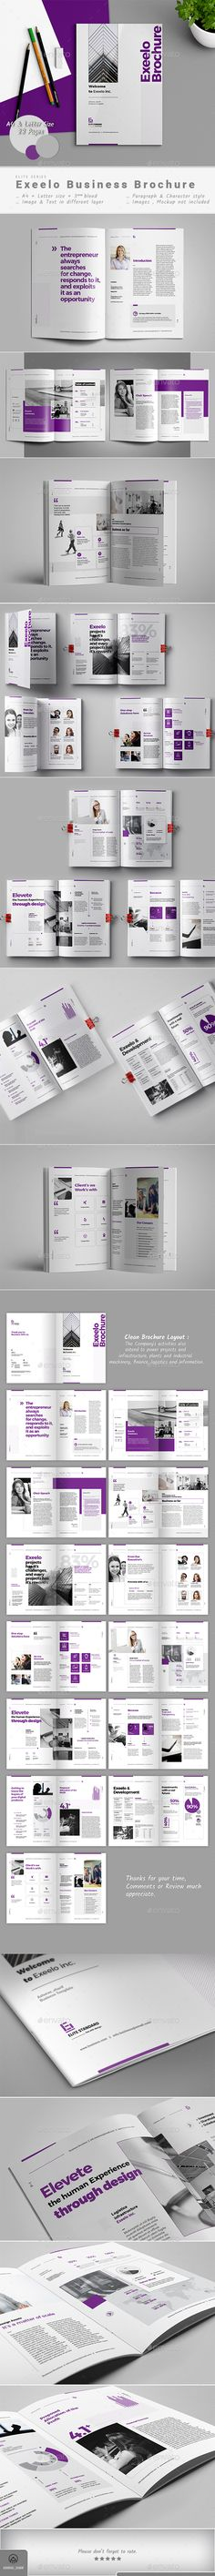 Brochure — InDesign INDD #annual report template #profile • Download ➝ https://graphicriver.net/item/brochure/19747183?ref=pxcr